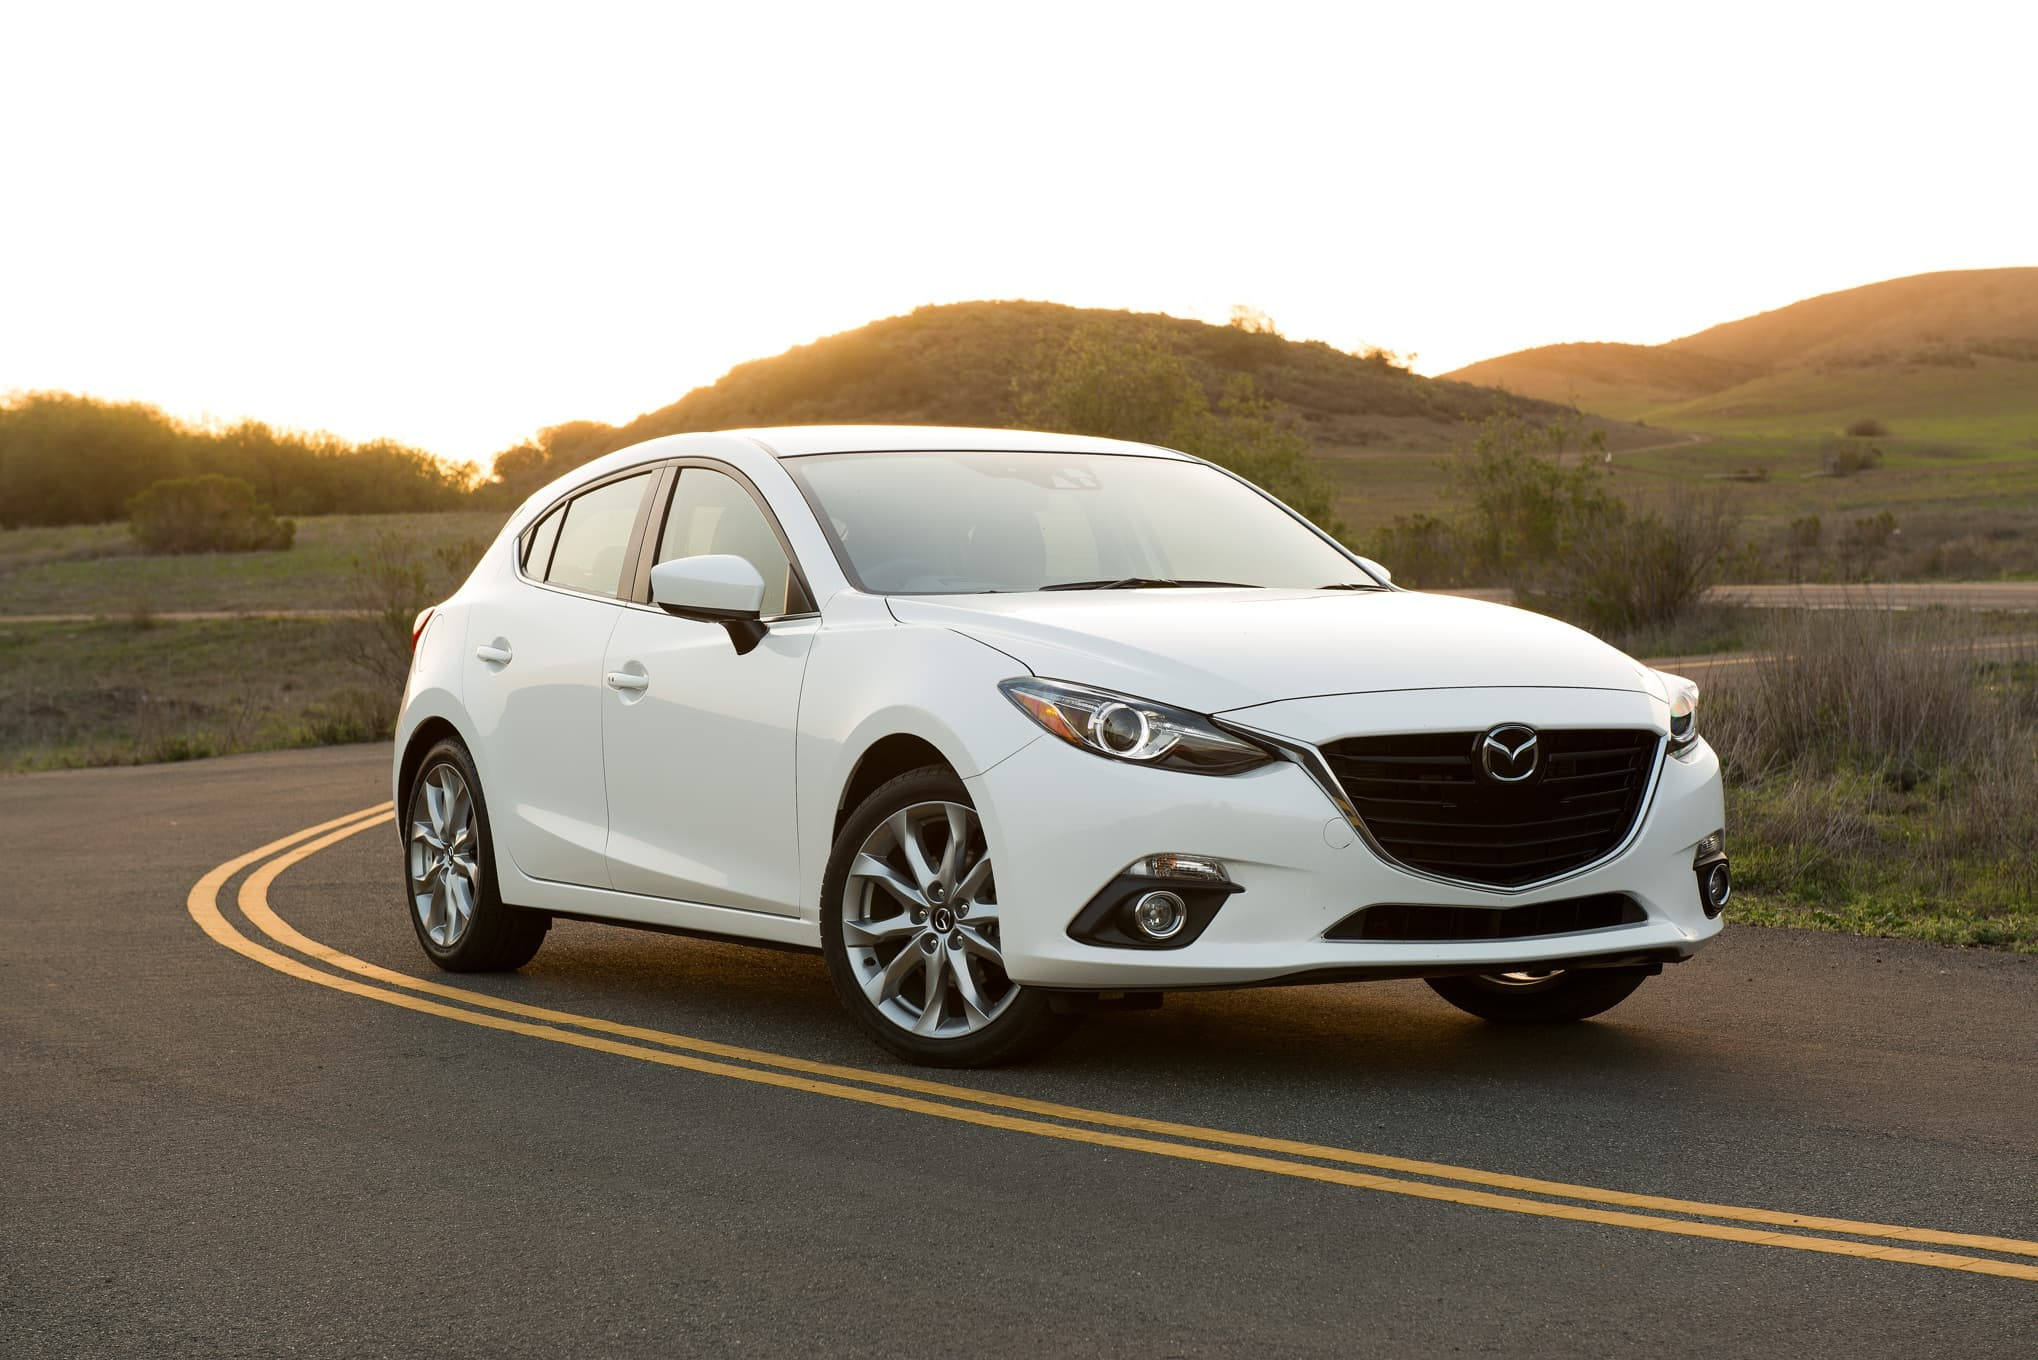 mazda 3 2016 hatchback wallpapers hd high quality. Black Bedroom Furniture Sets. Home Design Ideas